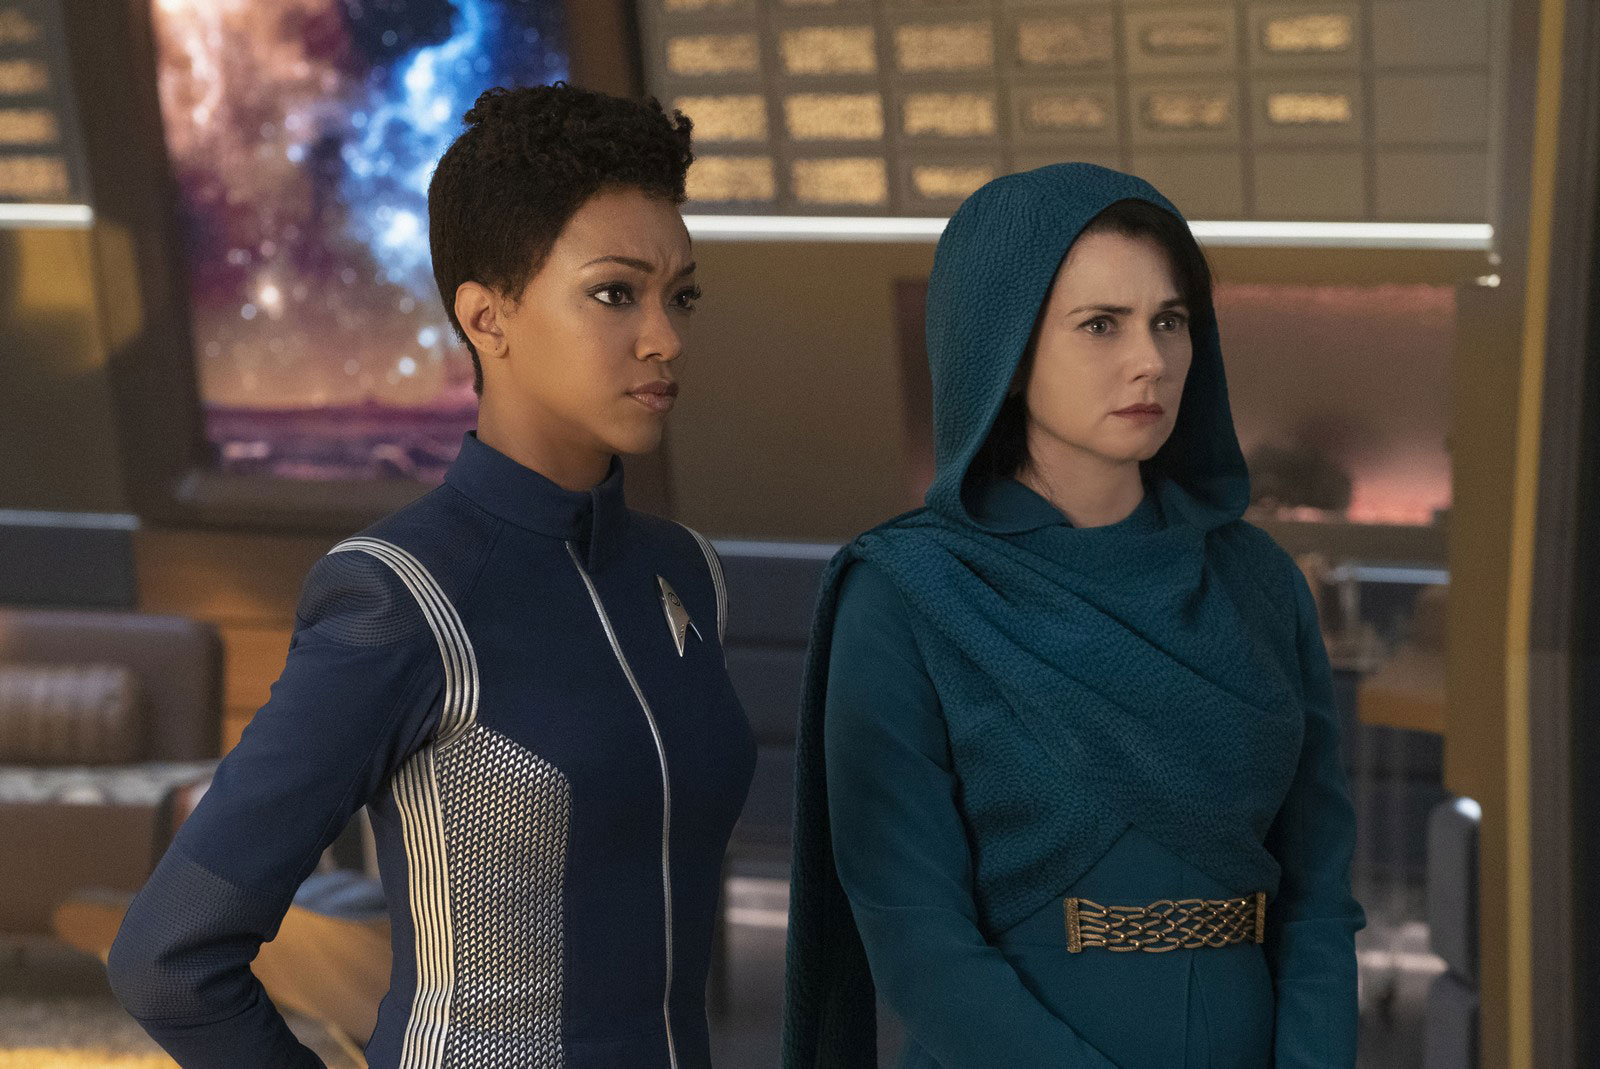 Sonequa Martin-Green as Commander Michael Burnham and Mia Kirshner as Amanda Grayson